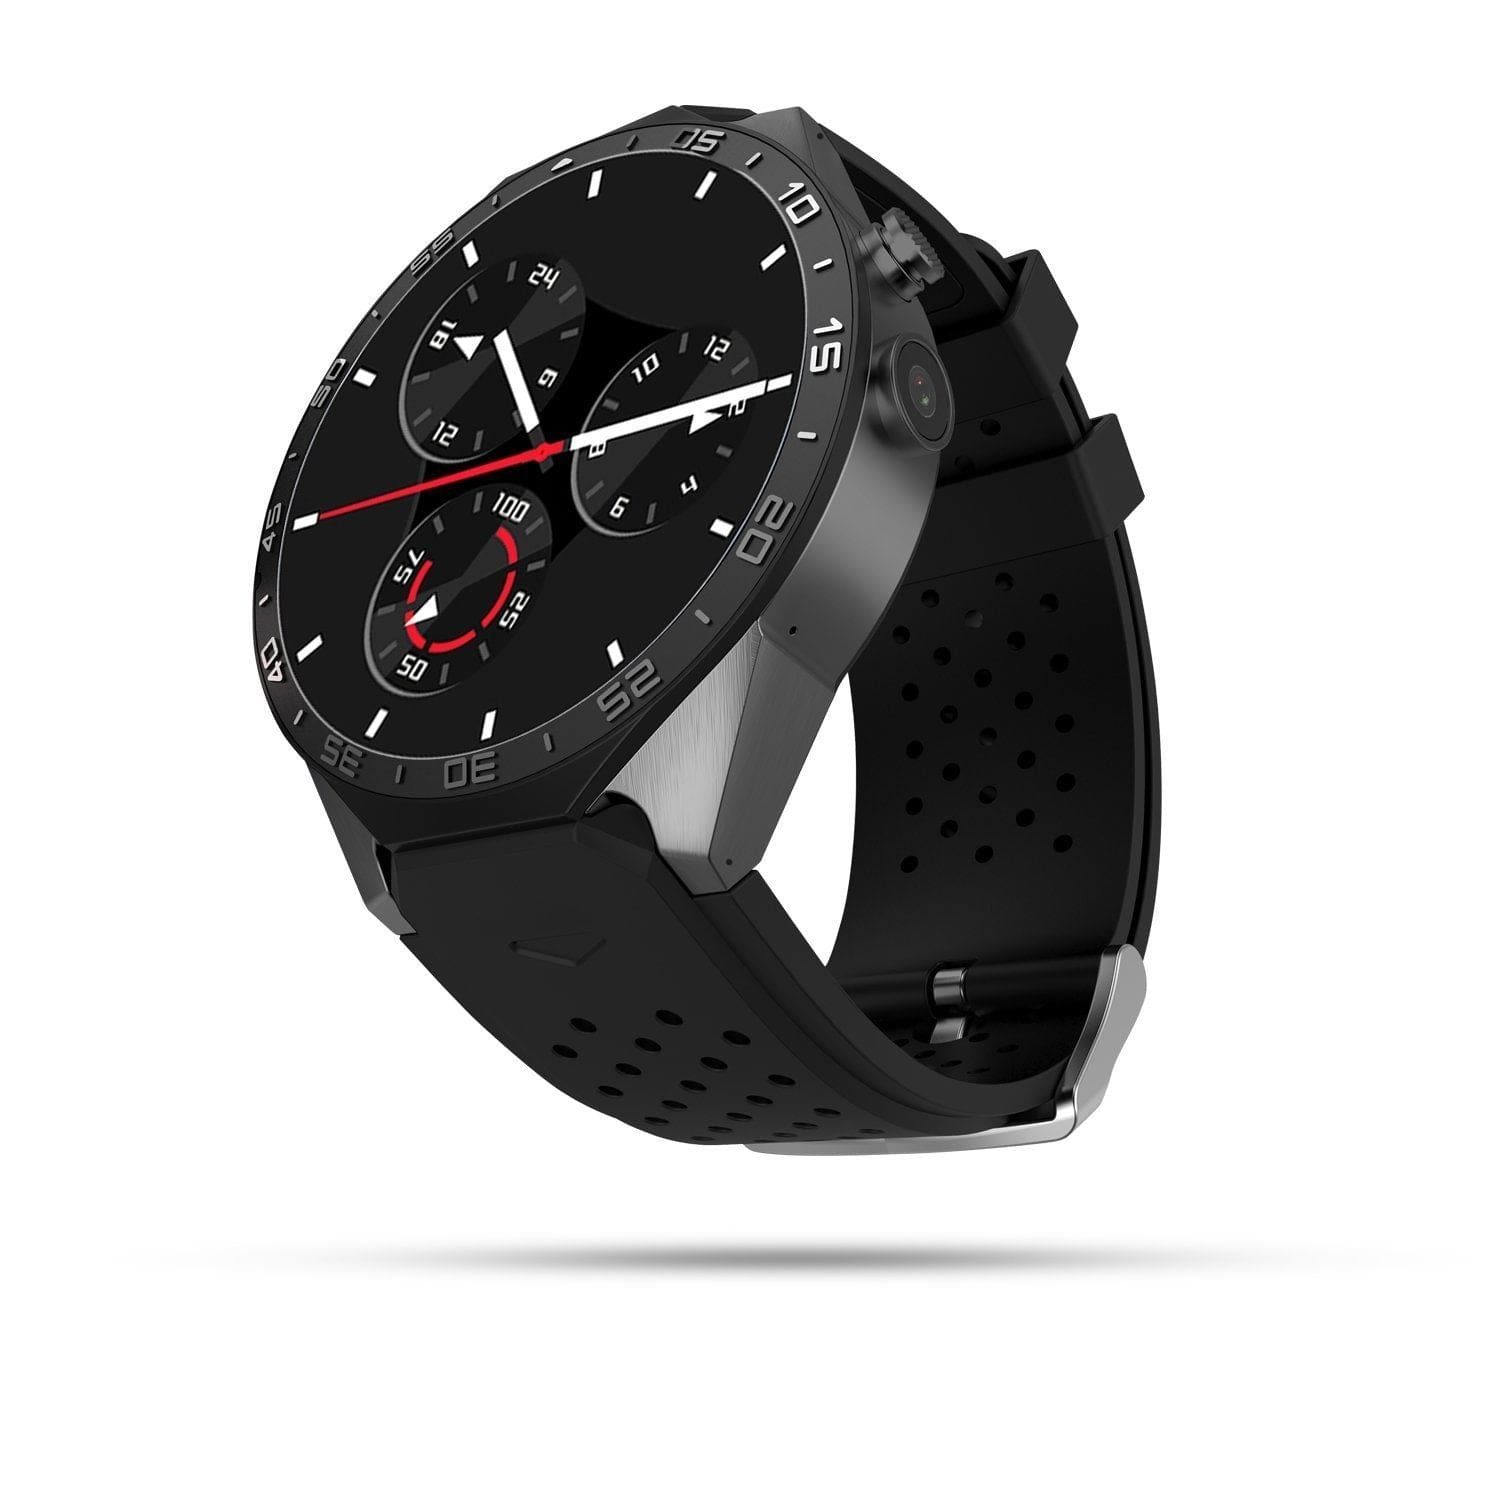 KW88 Kingwear Bluetooth Smartwatch/Phone for IOS & Android -Black Exclusivebrandsonline